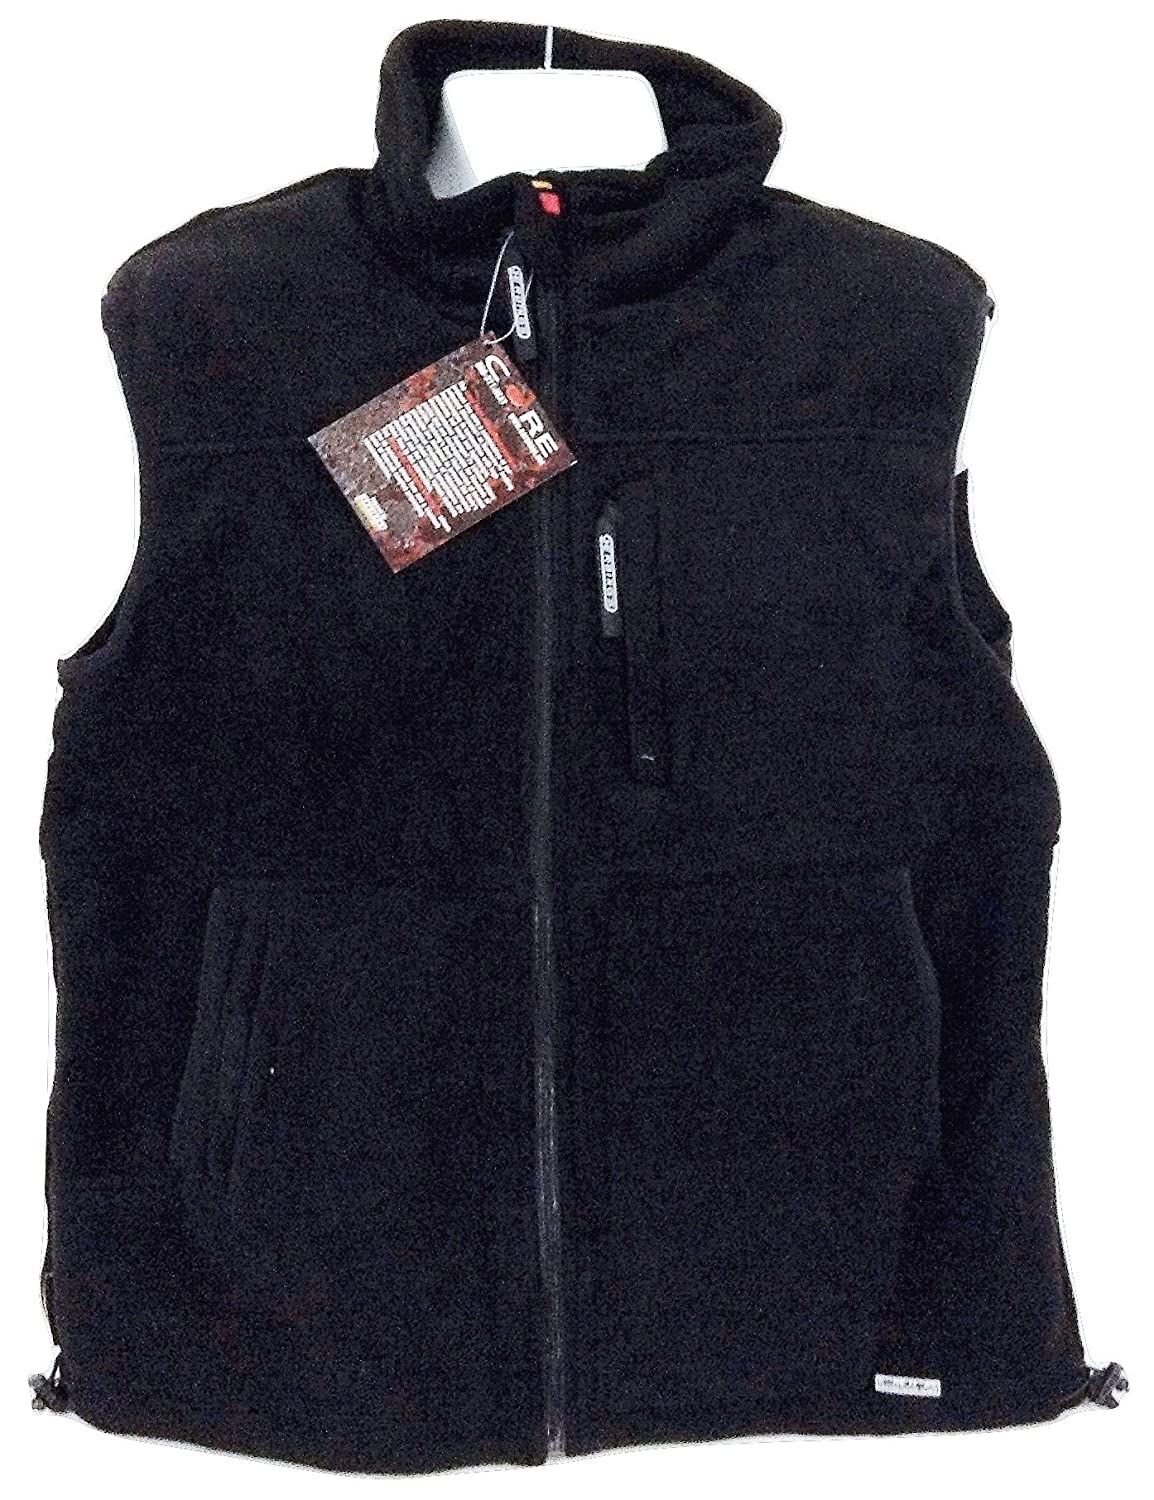 Amazon.com : Gerbing Core Heat Vest Black : Sports & Outdoors